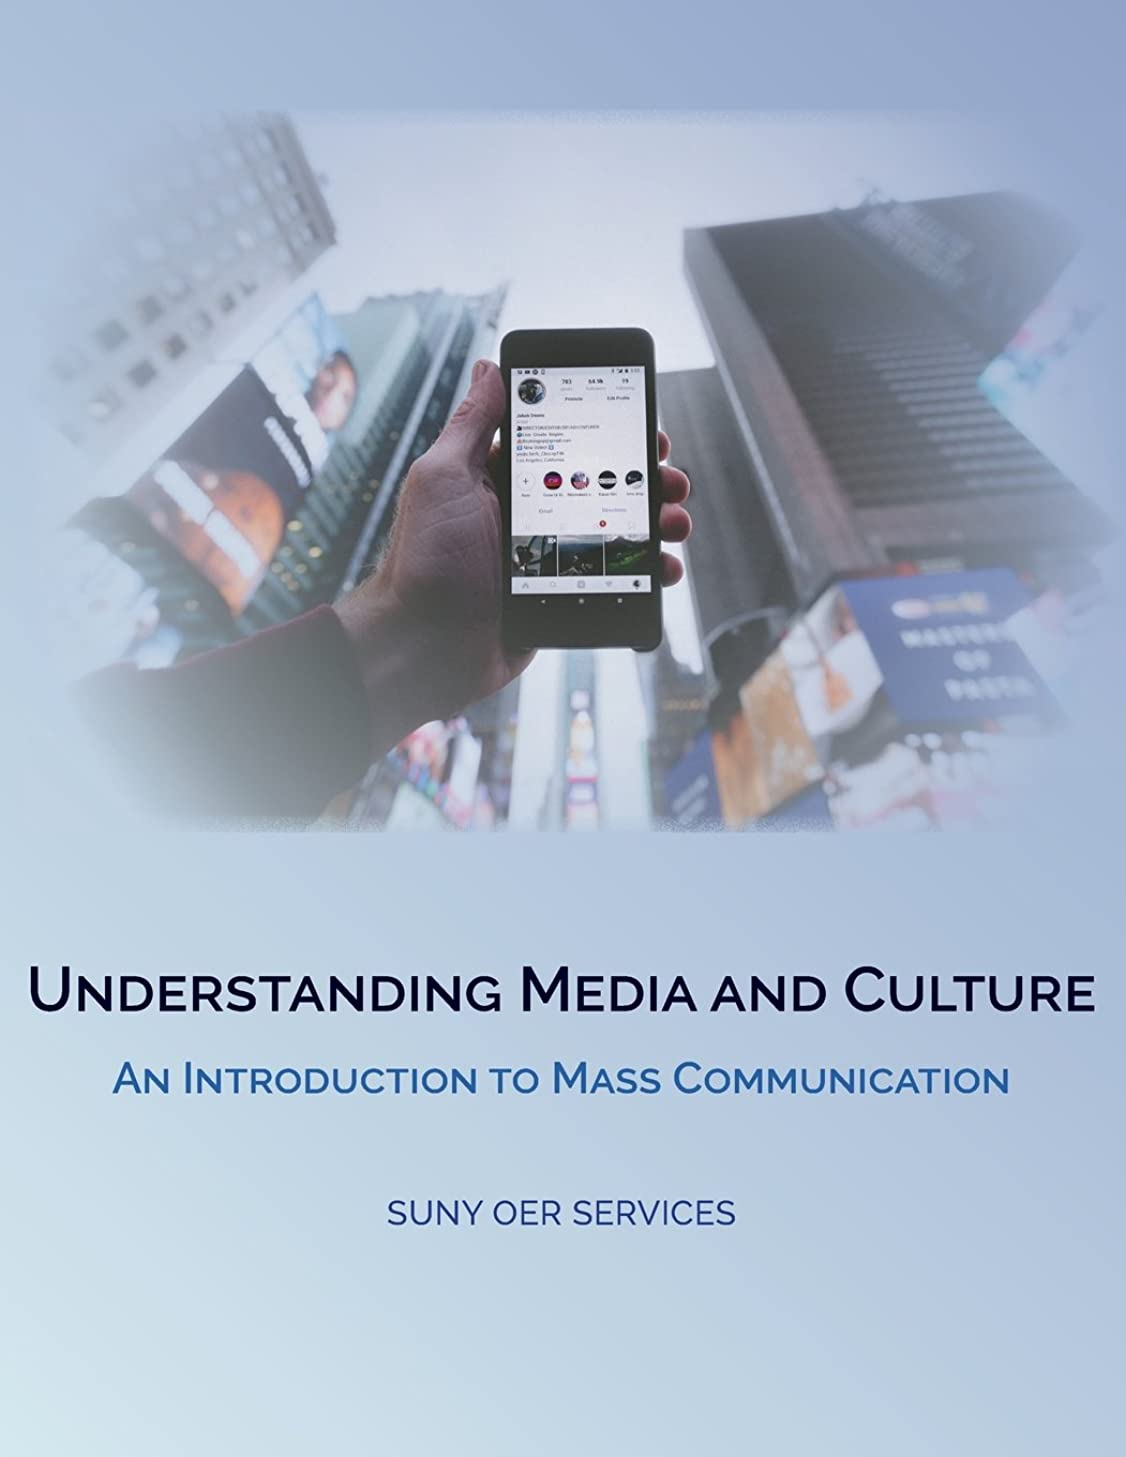 Understanding Media and Culture: An Introduction to Mass Communication